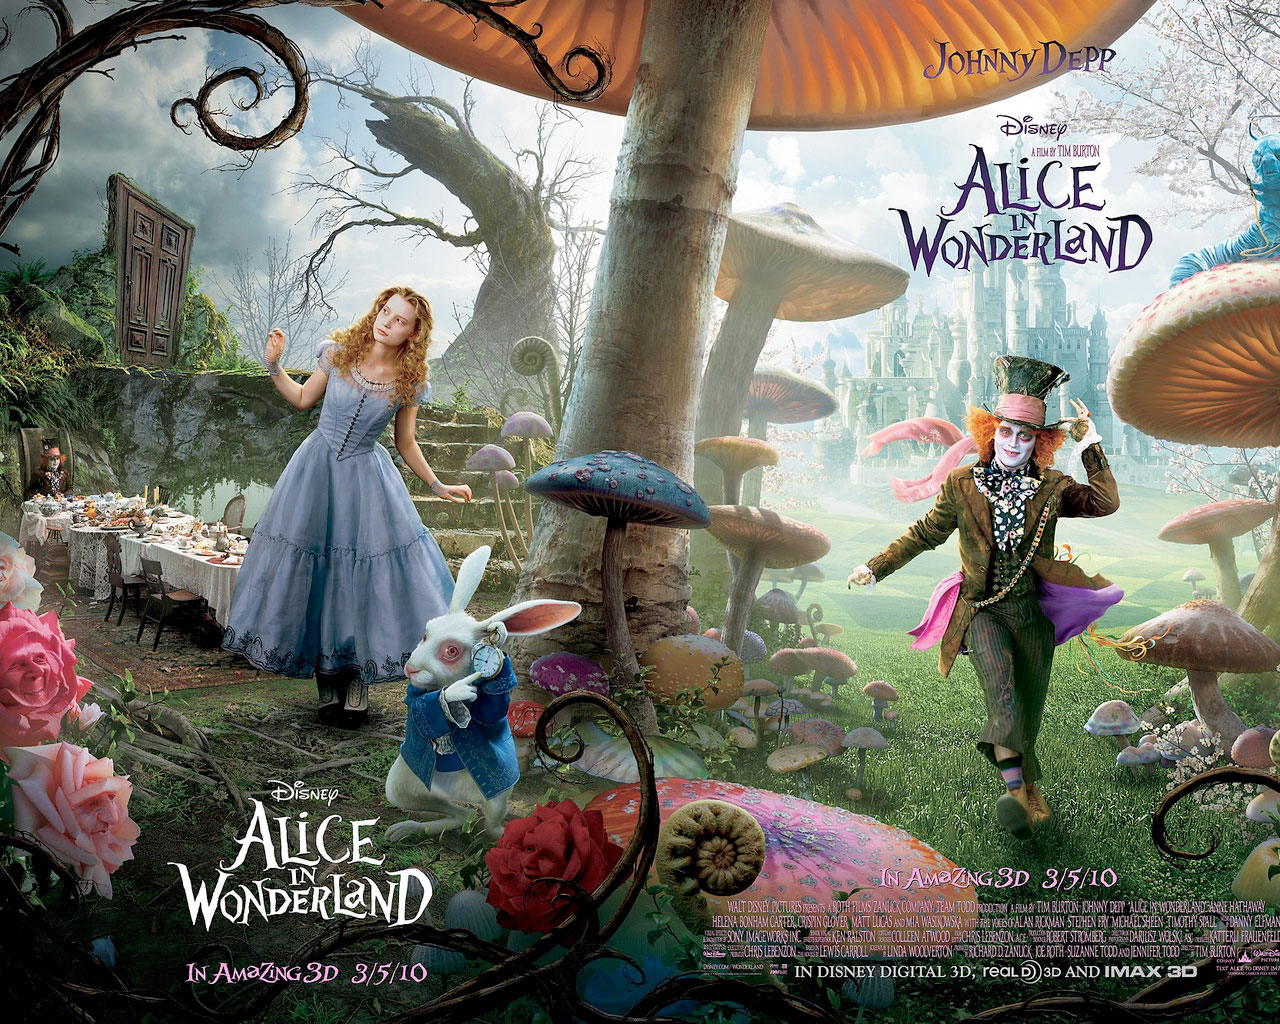 http://3.bp.blogspot.com/-iOFaattPX6k/TwMIZ-yyZEI/AAAAAAAAryQ/EhQUF_nnPoQ/s1600/alice_in_wonderland_movie-normal5.jpg